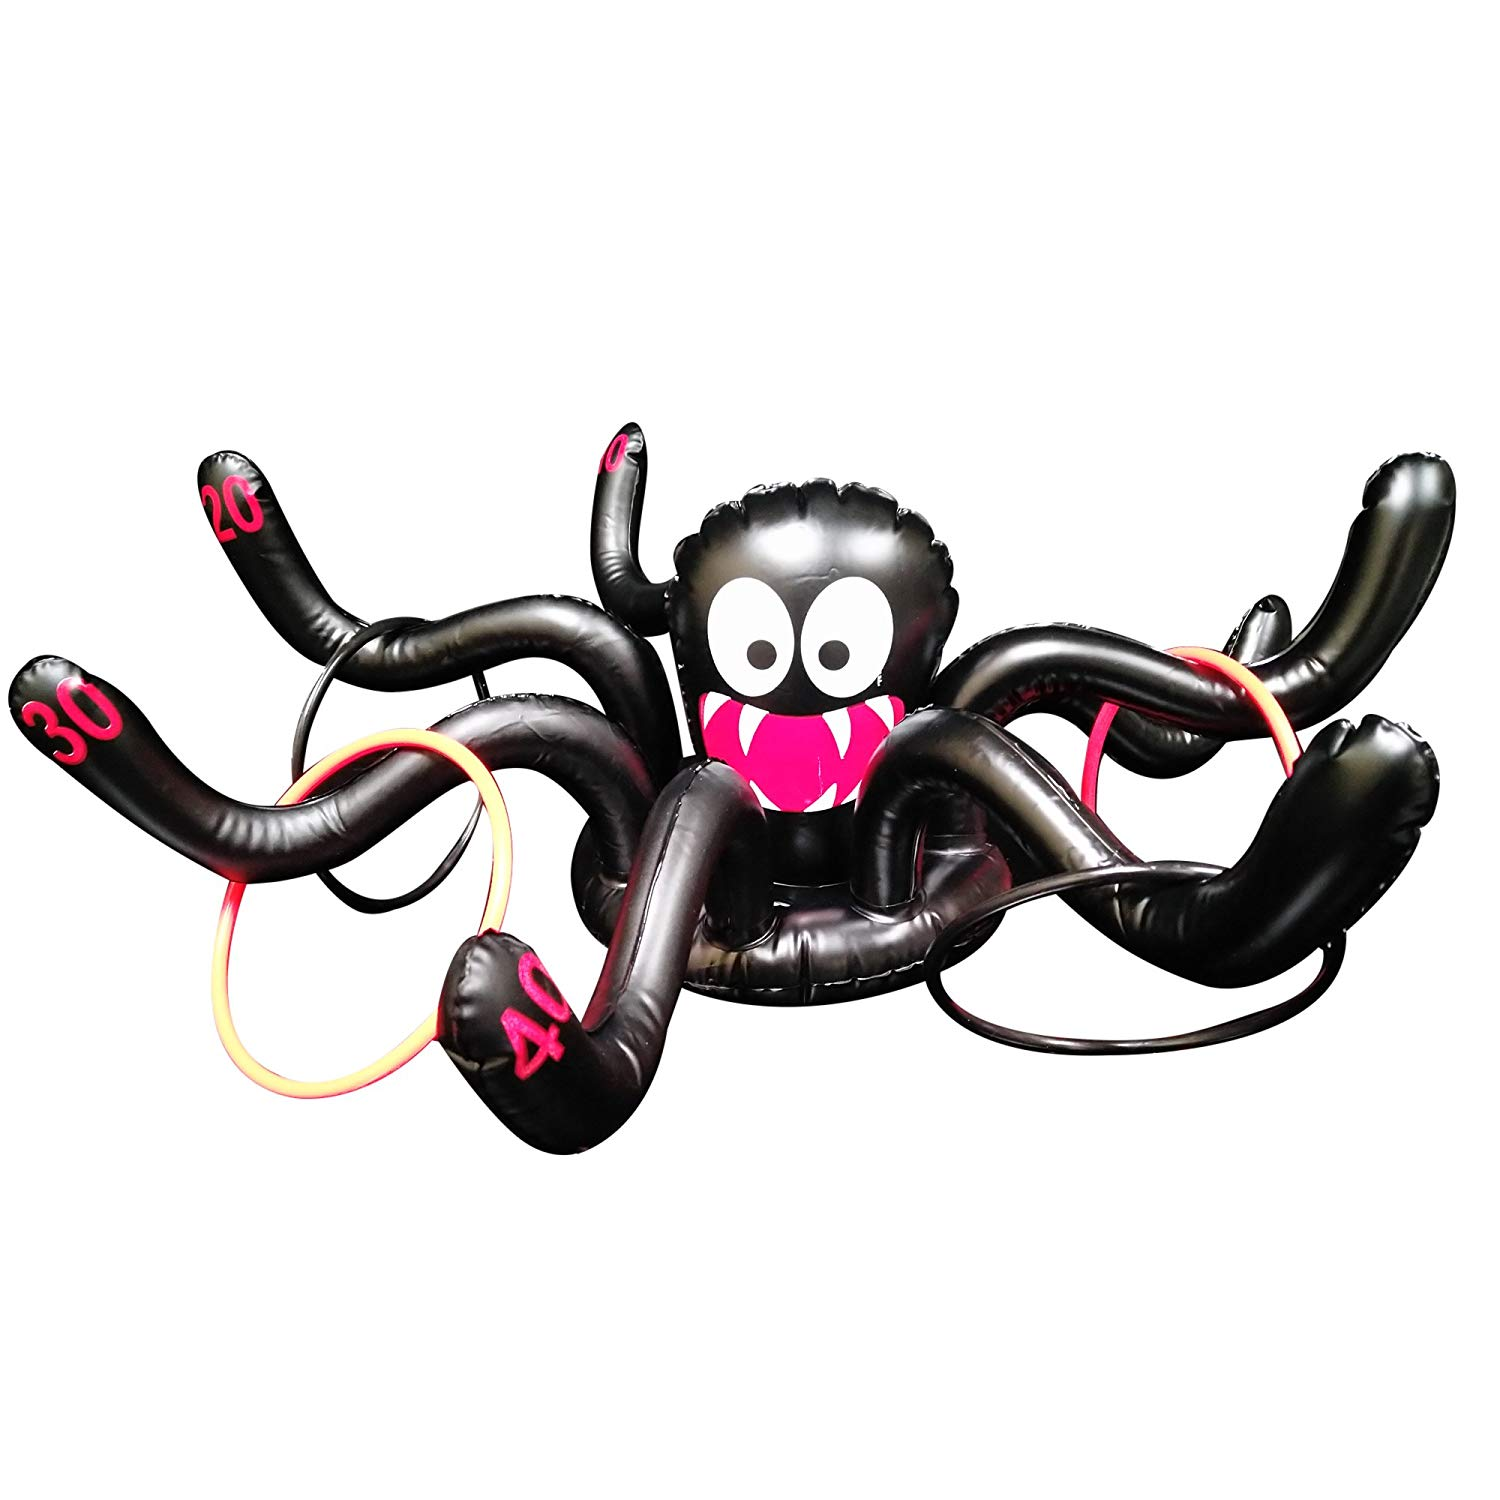 Fun Central BC552 1 Piece, 22 Inches, Inflatable Spider Ring Toss Game for Kids, Ring Ross Games for Kids, Toss Games for Outdoor Party, Kids Toss Games